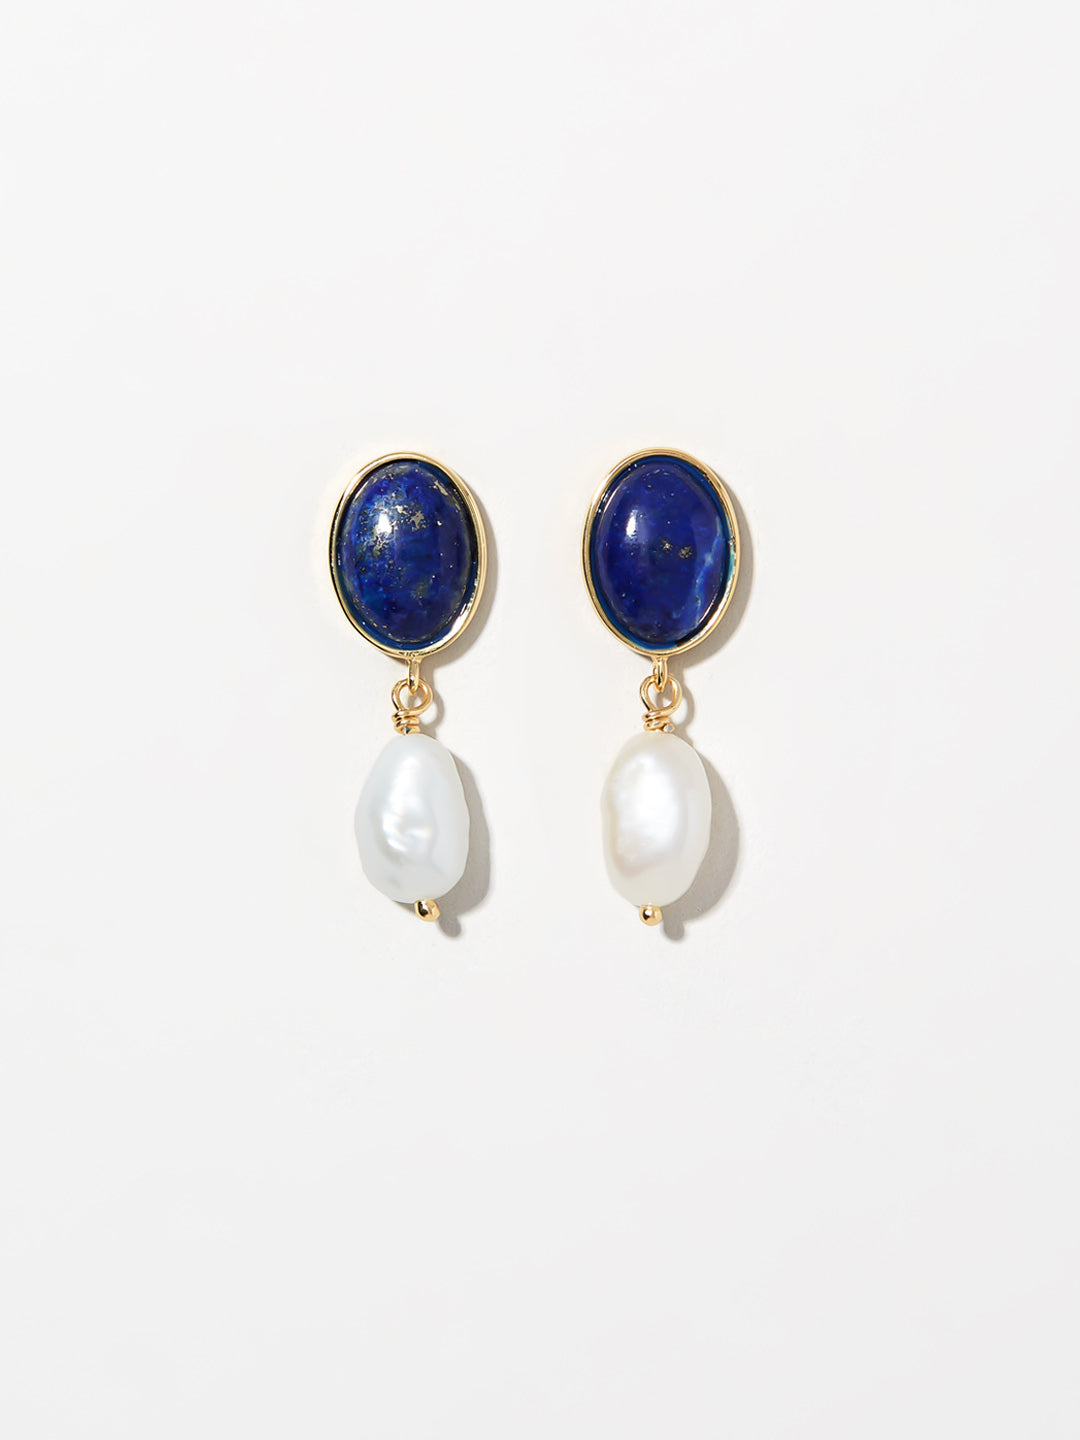 Ana Luisa Earrings Statement Earrings Pearl Drop Earrings Azul Sterling Silver Gold